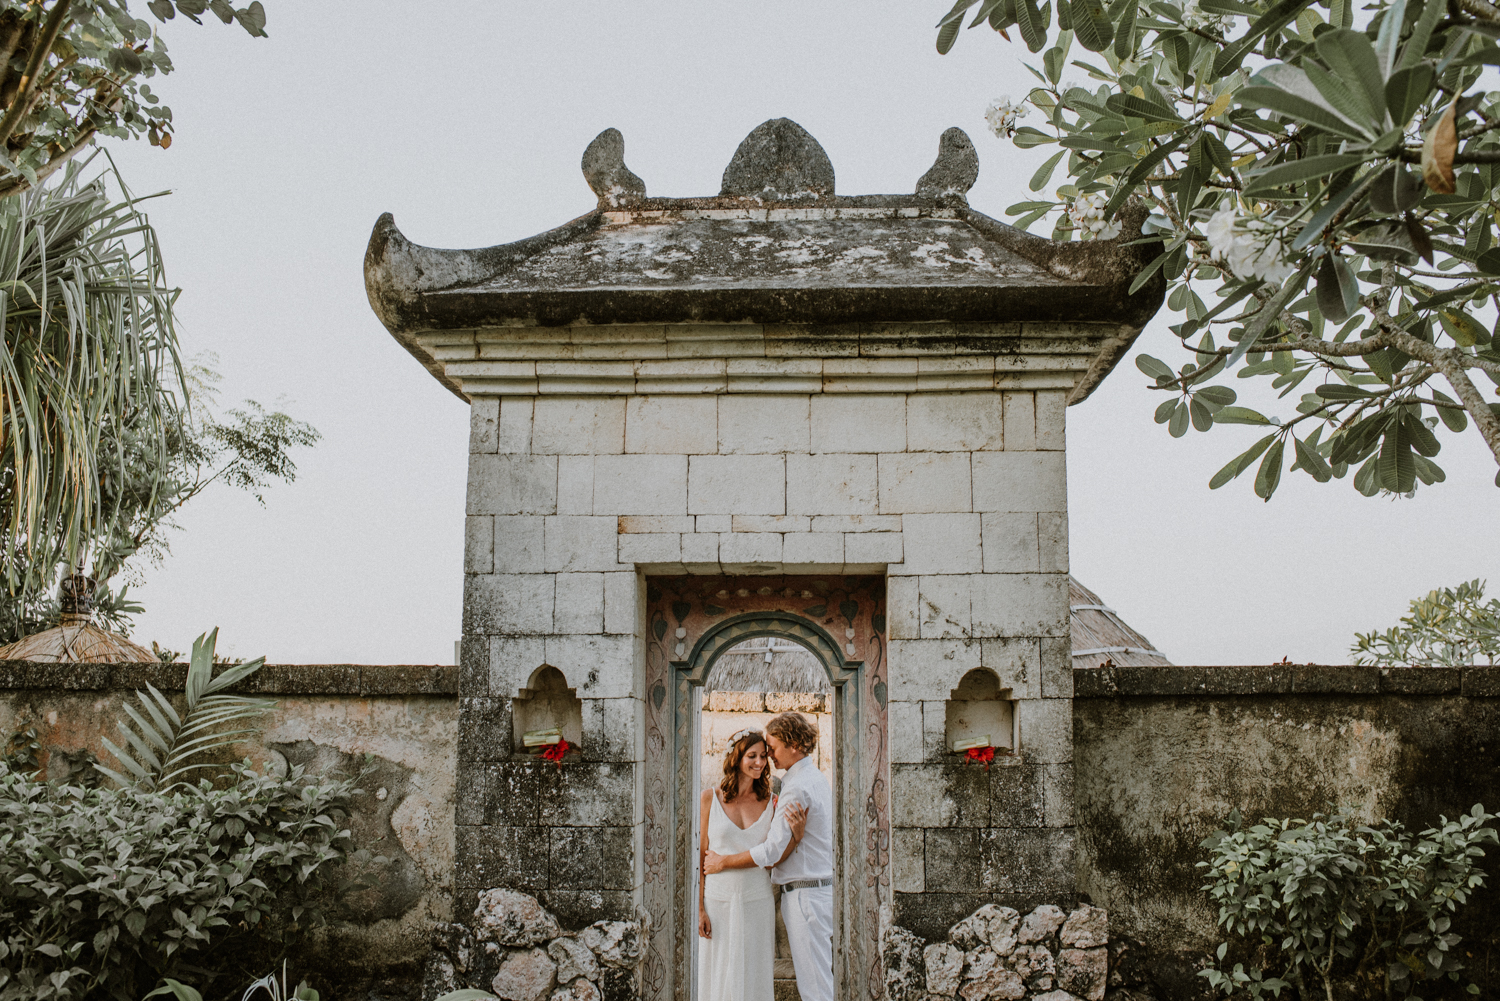 baliweddingdestination-weddinginbali-baliweddingphotographer-diktatphotography-bayuhsabbha-uluwatu-bali-69